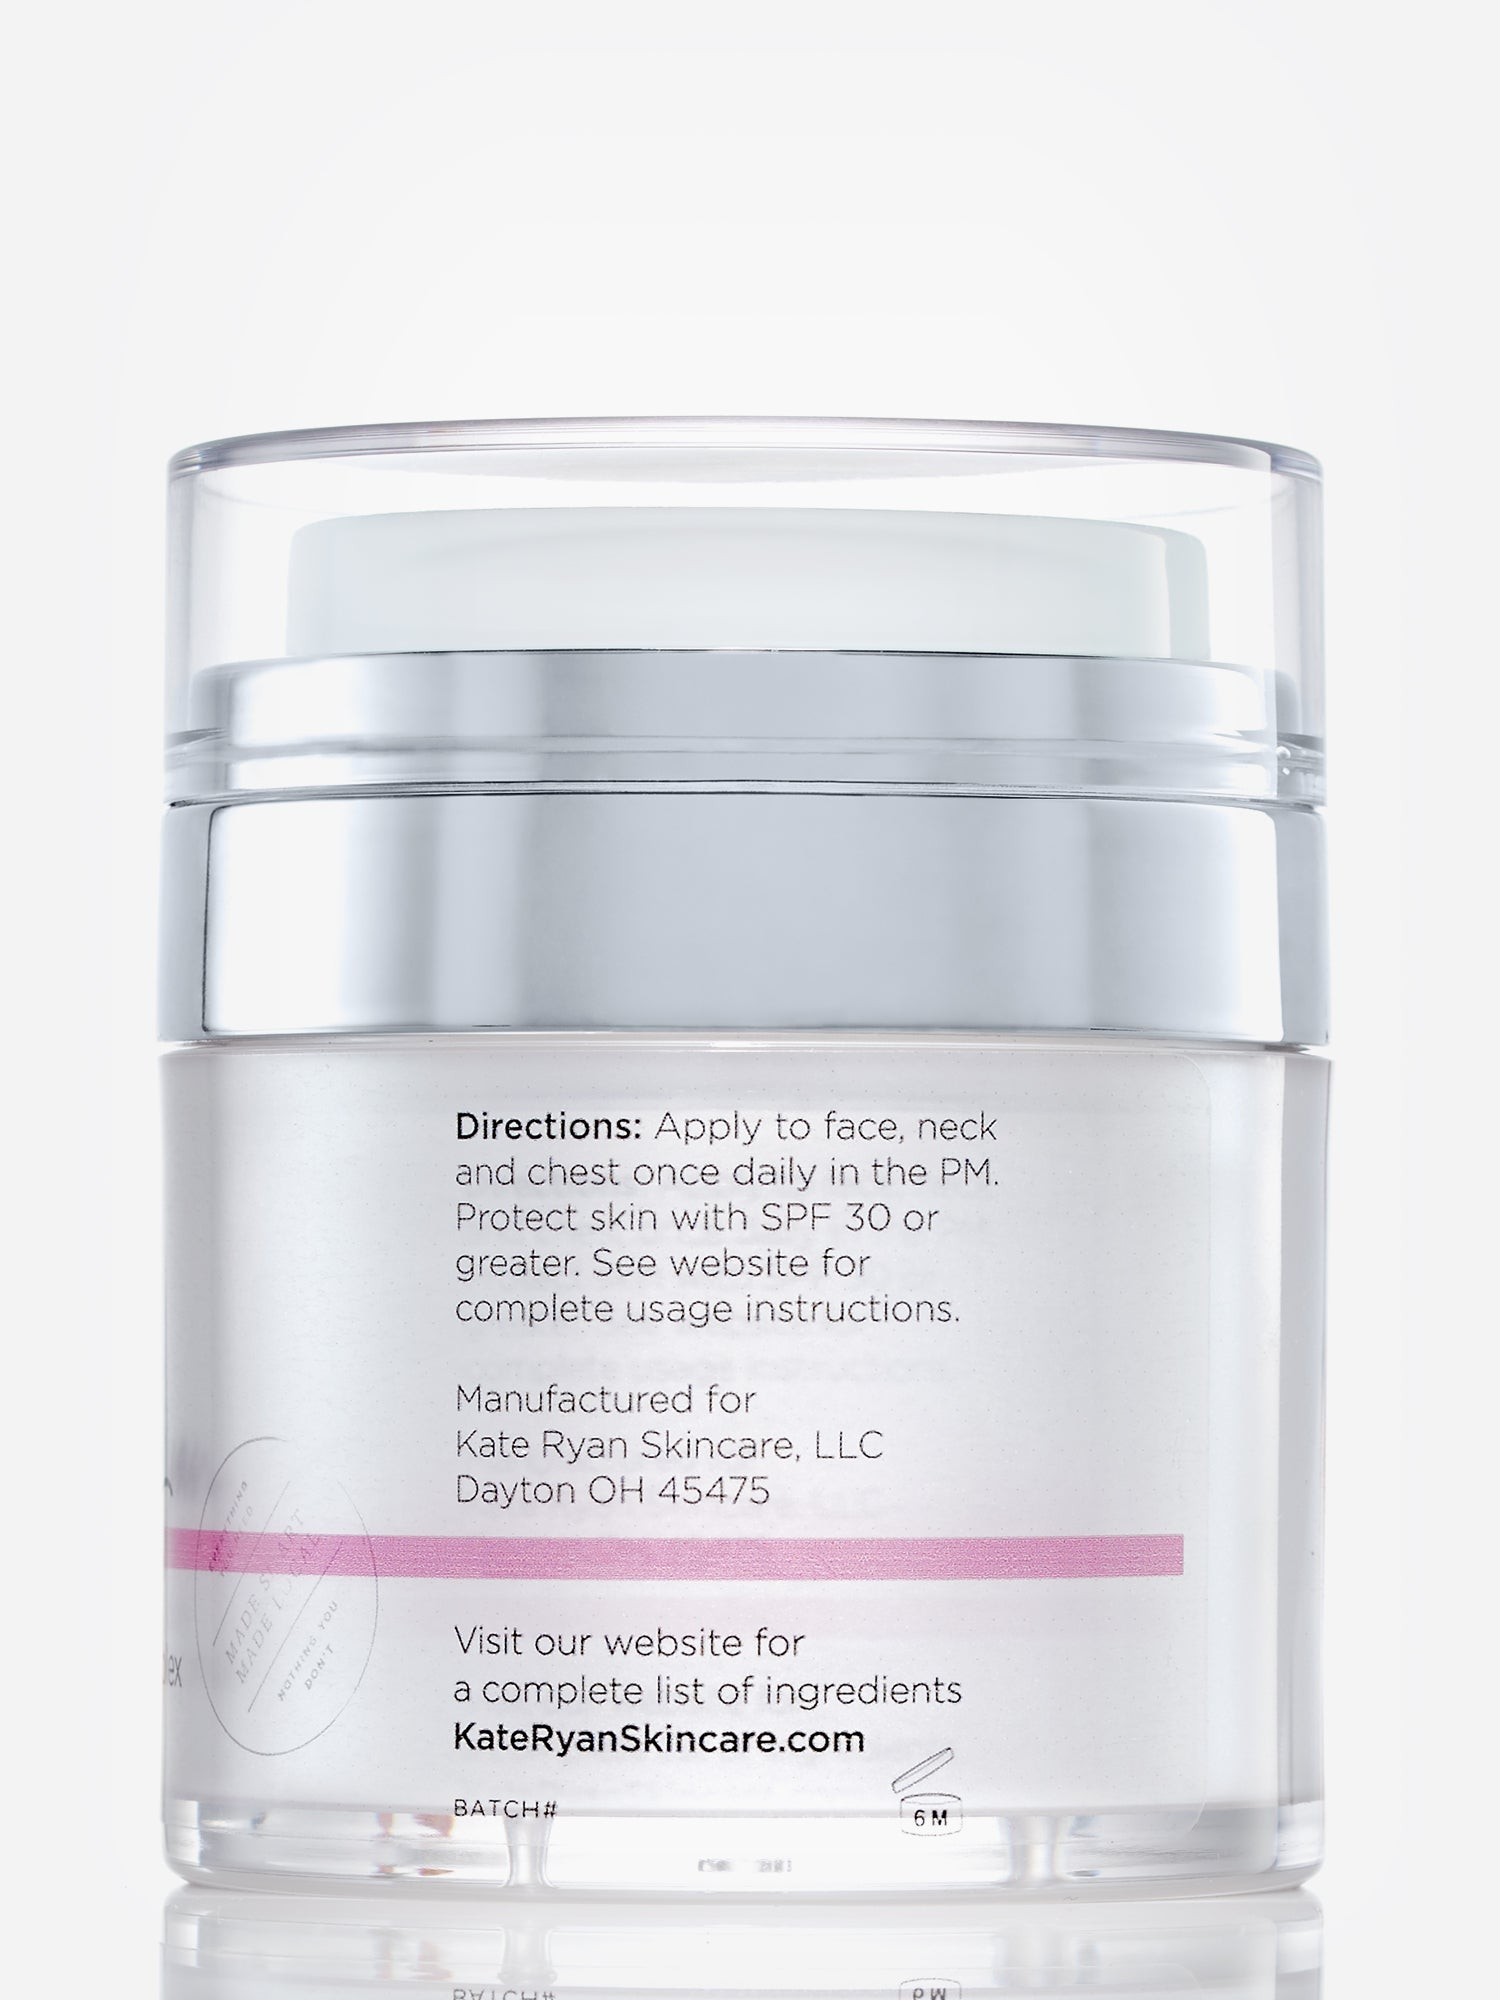 Kate Ryan Skincare TOTAL NUTRITION NIGHT REPAIR COMPLEX